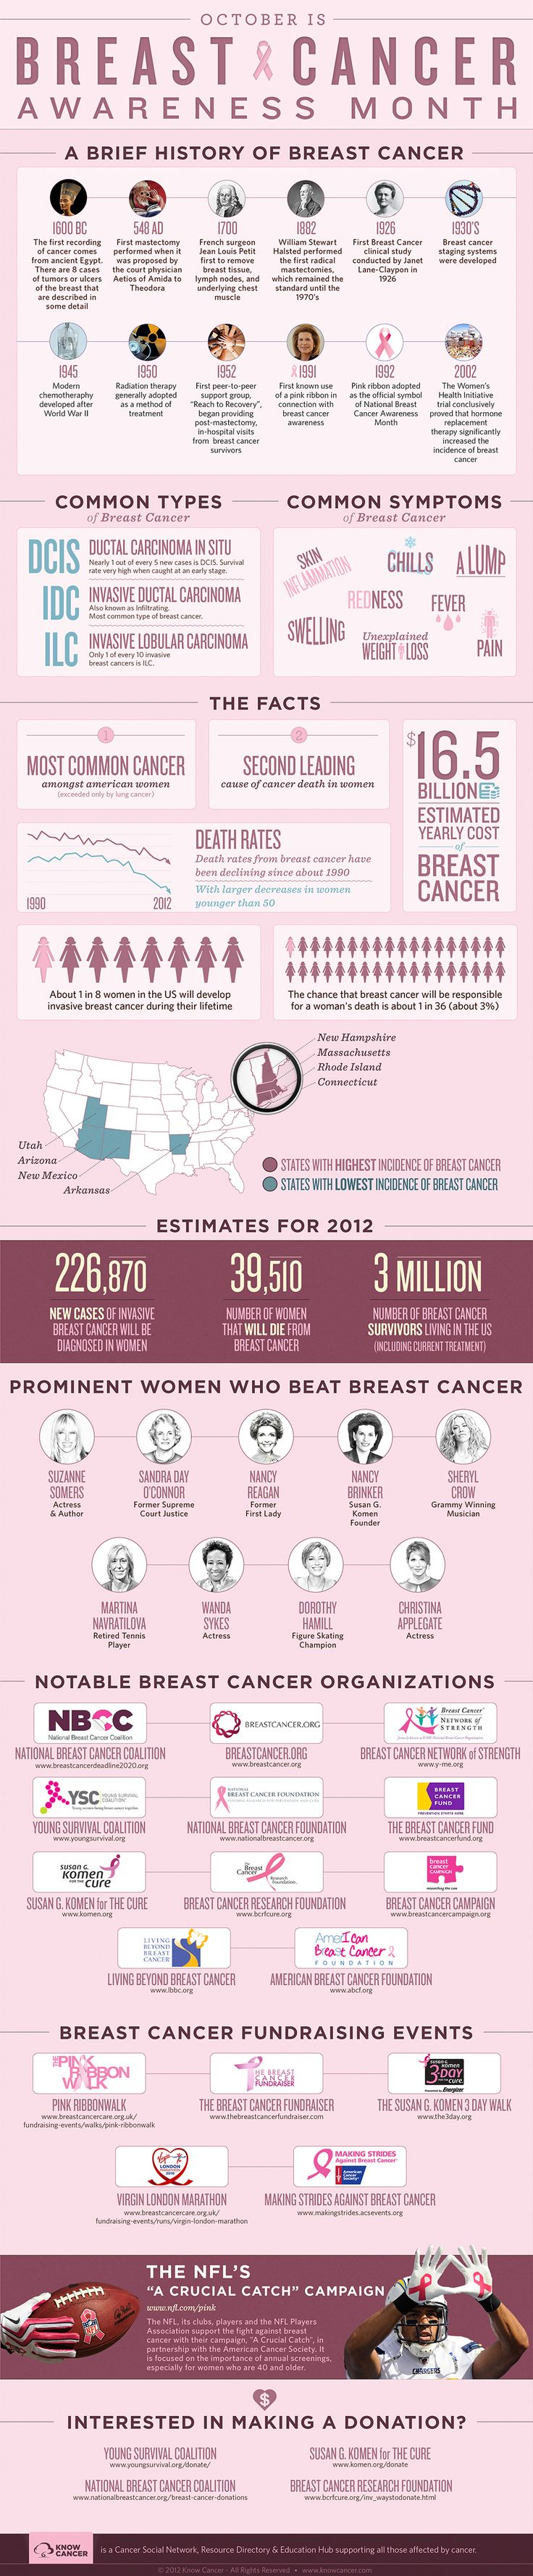 Breast cancer is the second leading cause of cancer death in women, exceeded only by lung cancer. The chance that breast cancer will be responsible fo